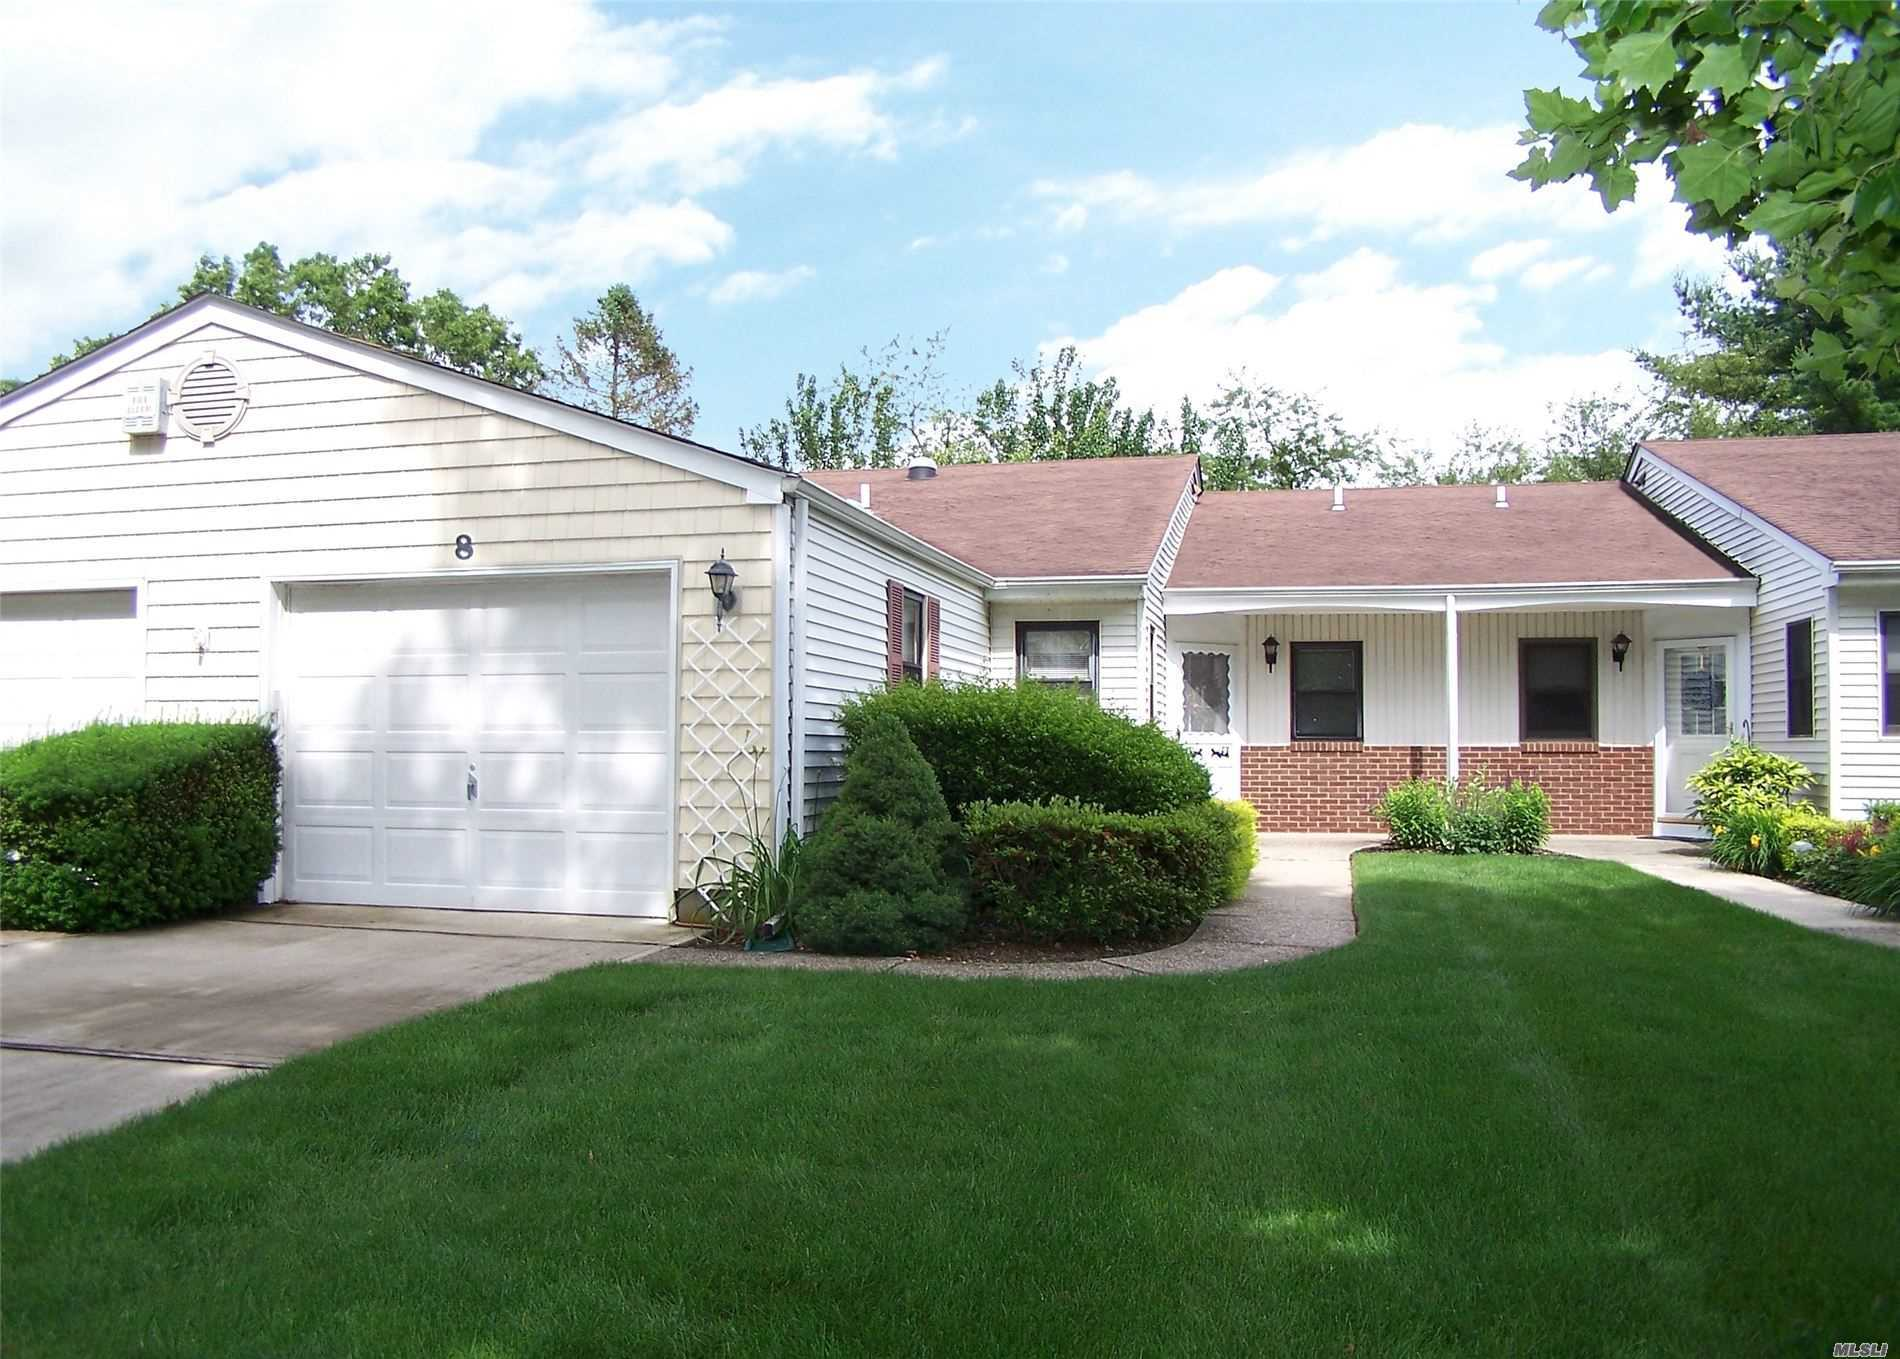 Property for sale at 8 Knolls Dr, Stony Brook,  New York 11790